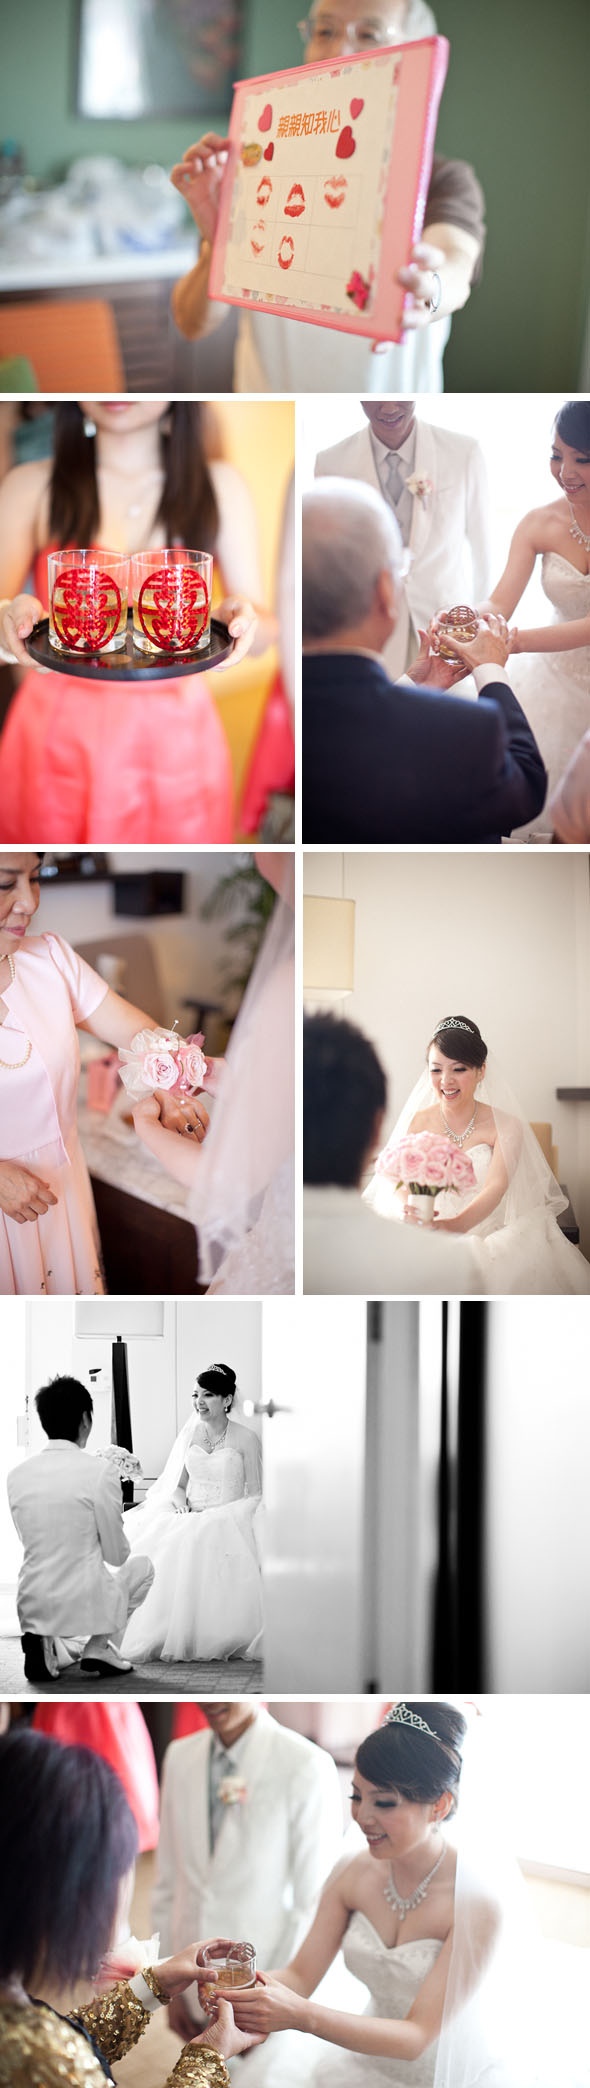 asian wedding in hawaii Destination Wedding in Waikiki, Hawaii